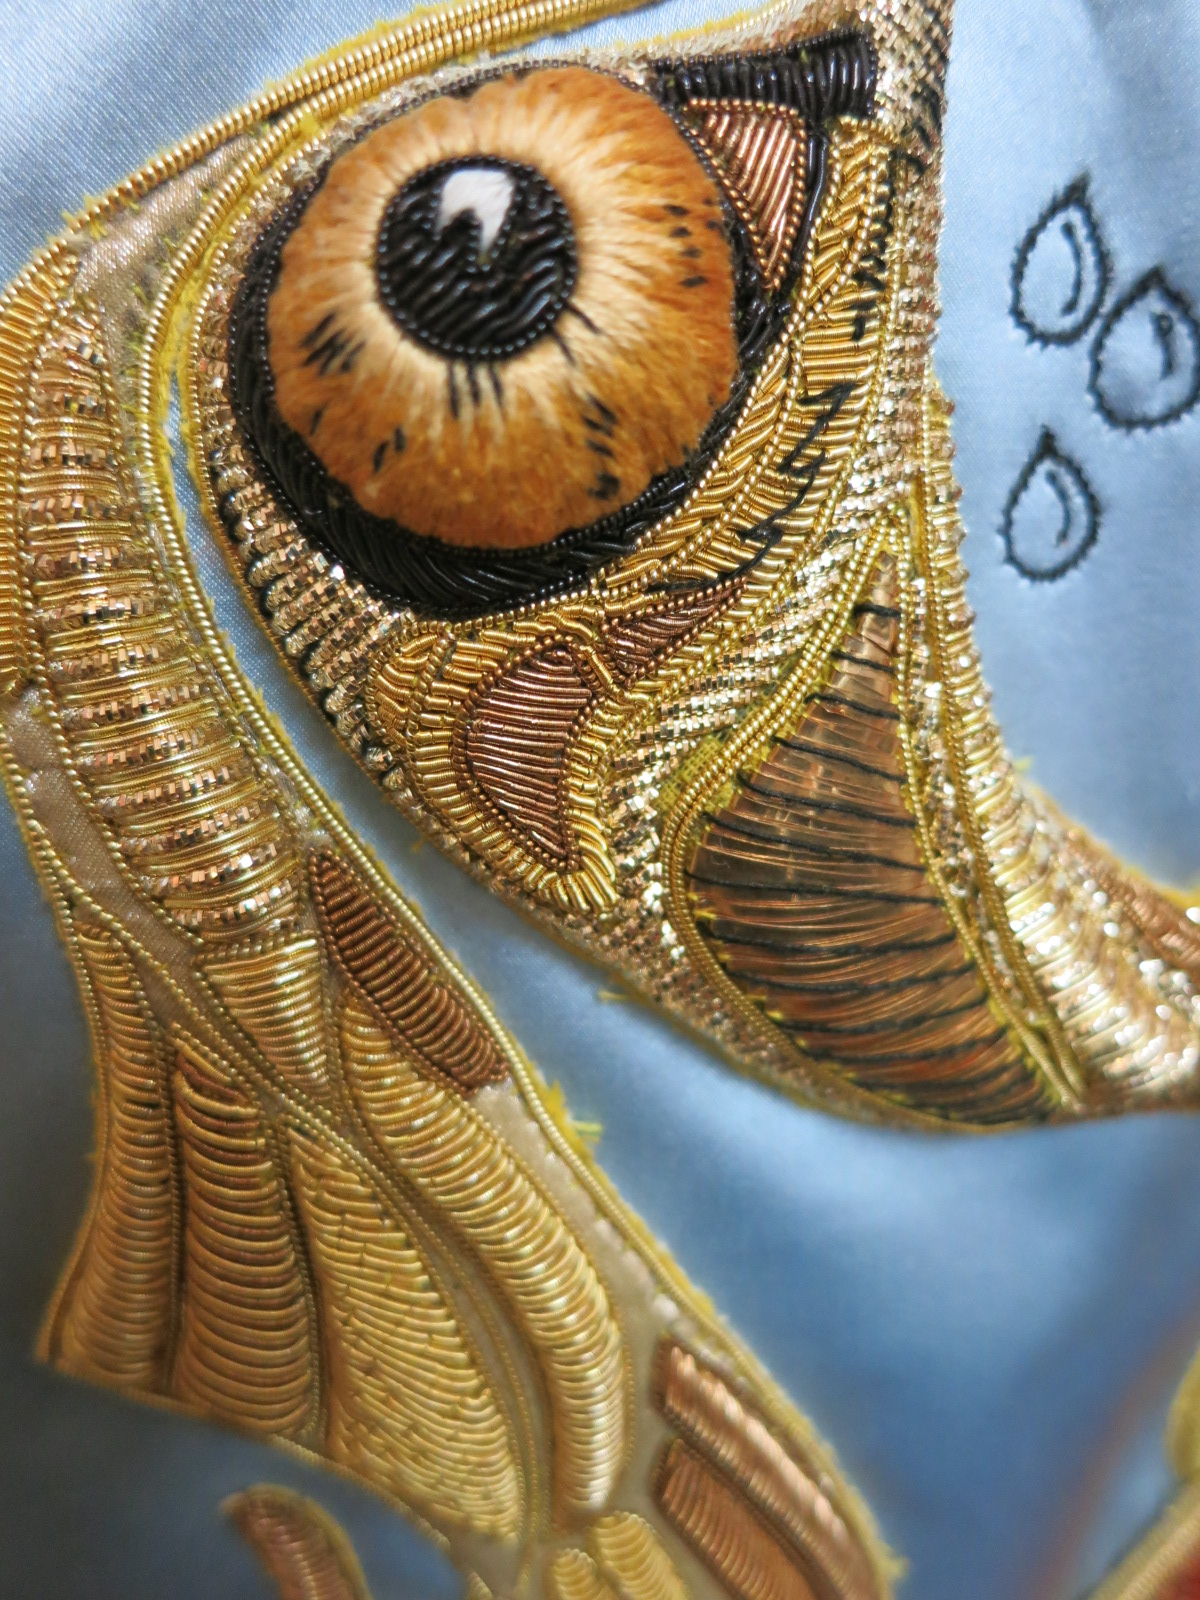 A detail of an embroidered garment in a Hand & Lock Collection